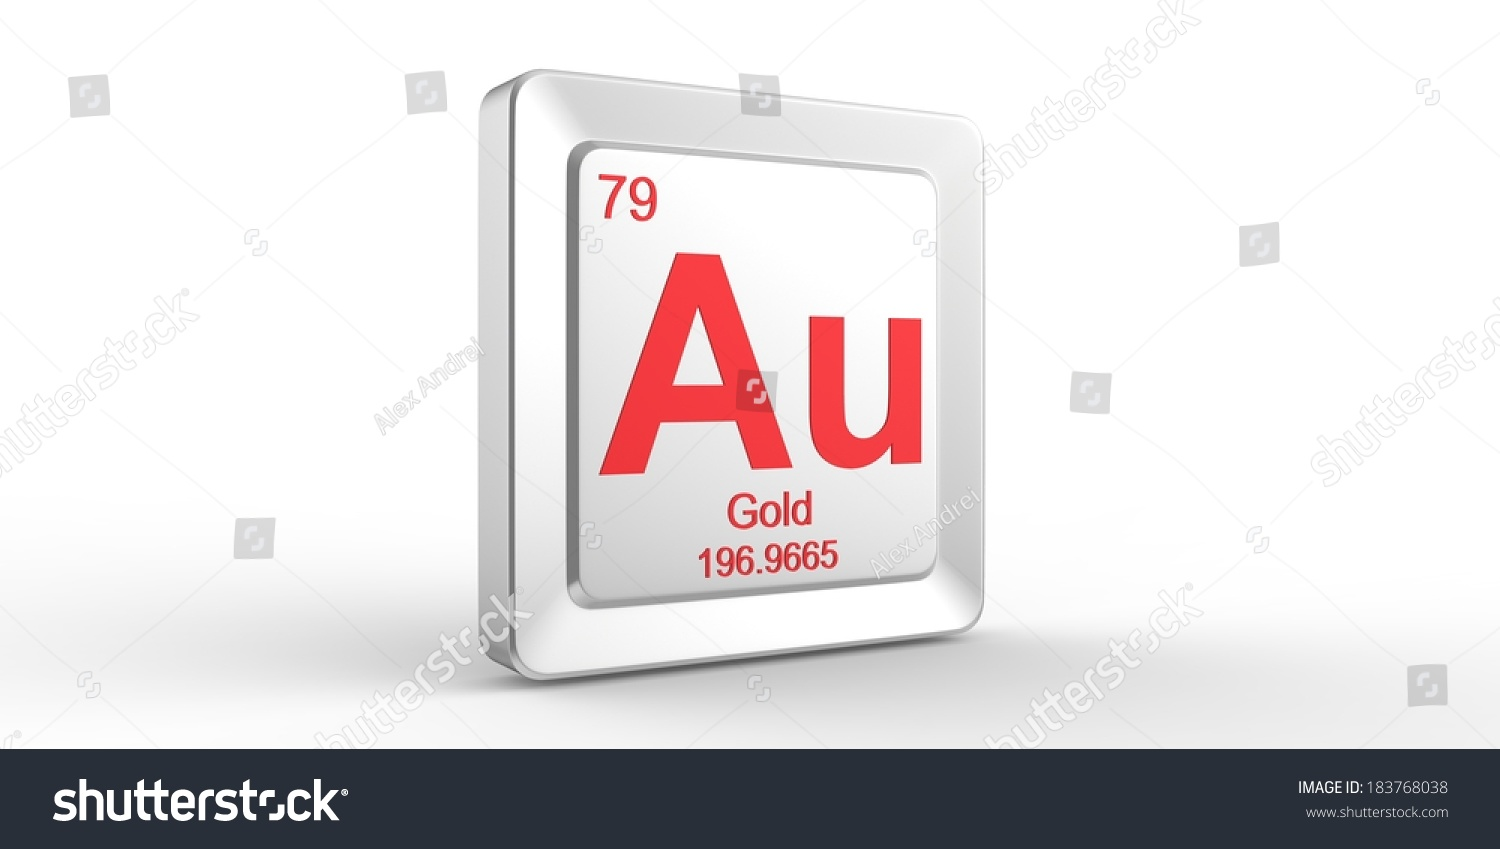 au symbol 79 material for gold chemical element of the periodic table - Au Symbol Periodic Table